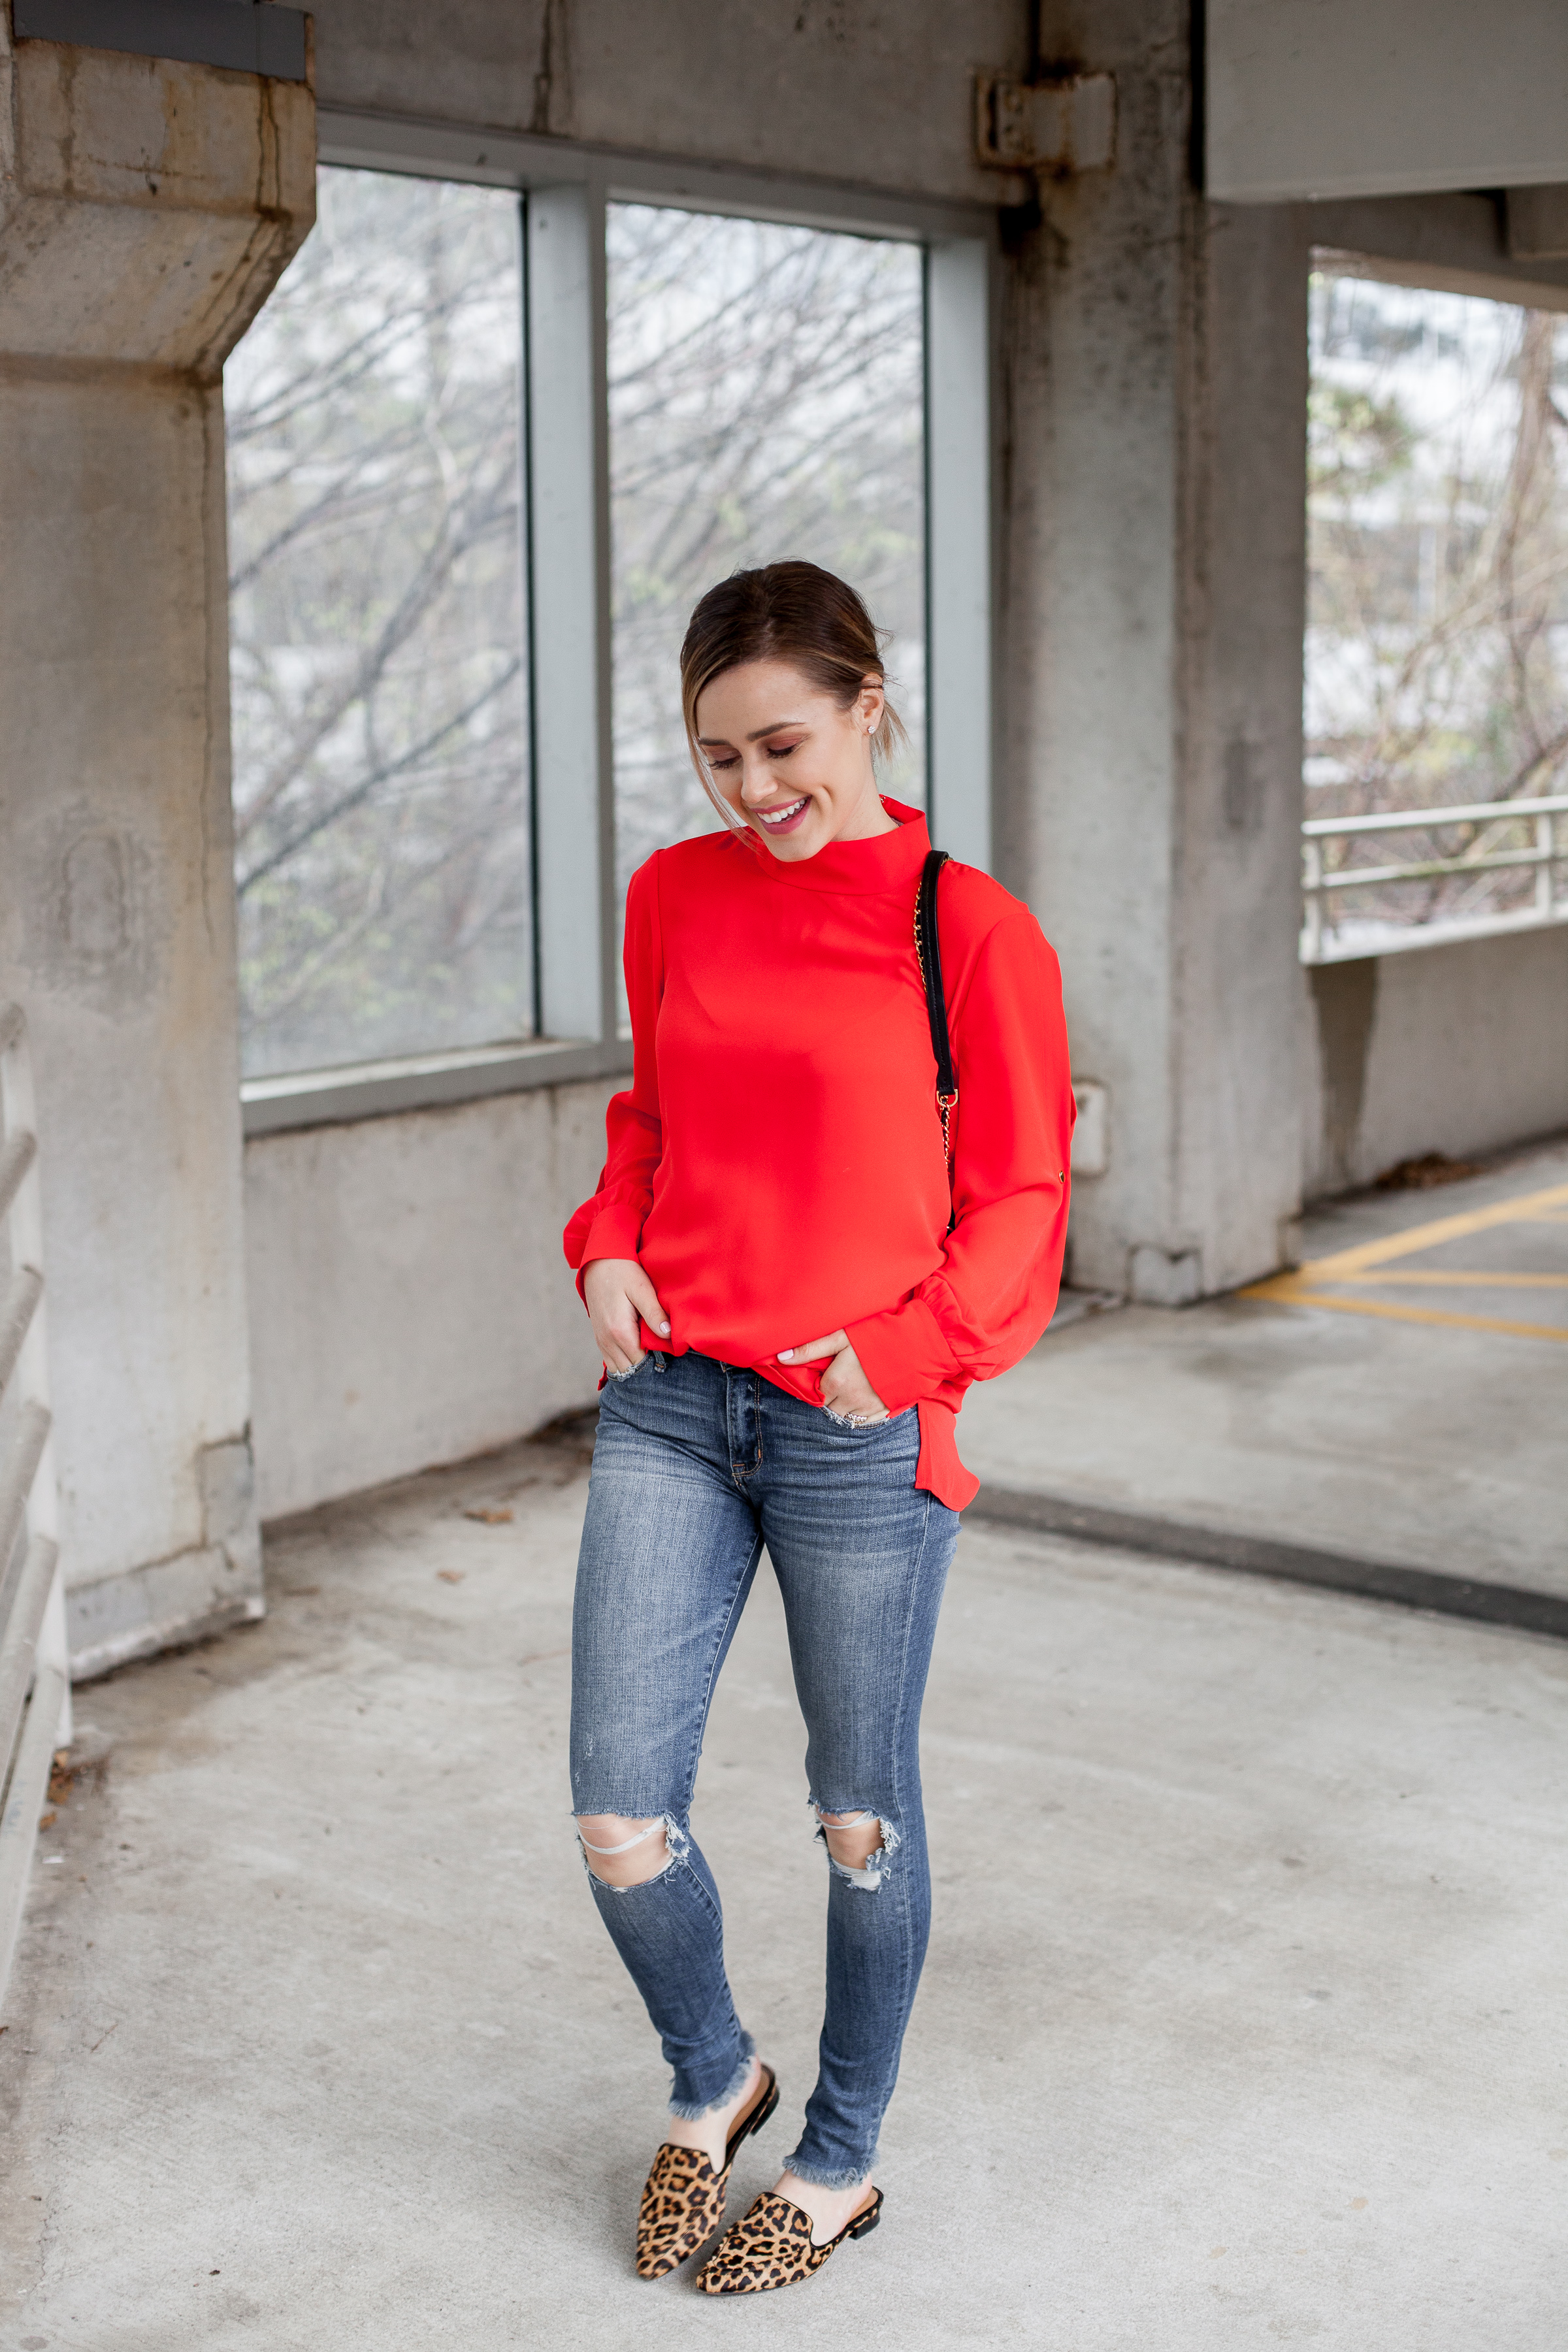 Houston fashion blogger Uptown with Elly Brown shares how to navigate and shop for clothing on Amazon.